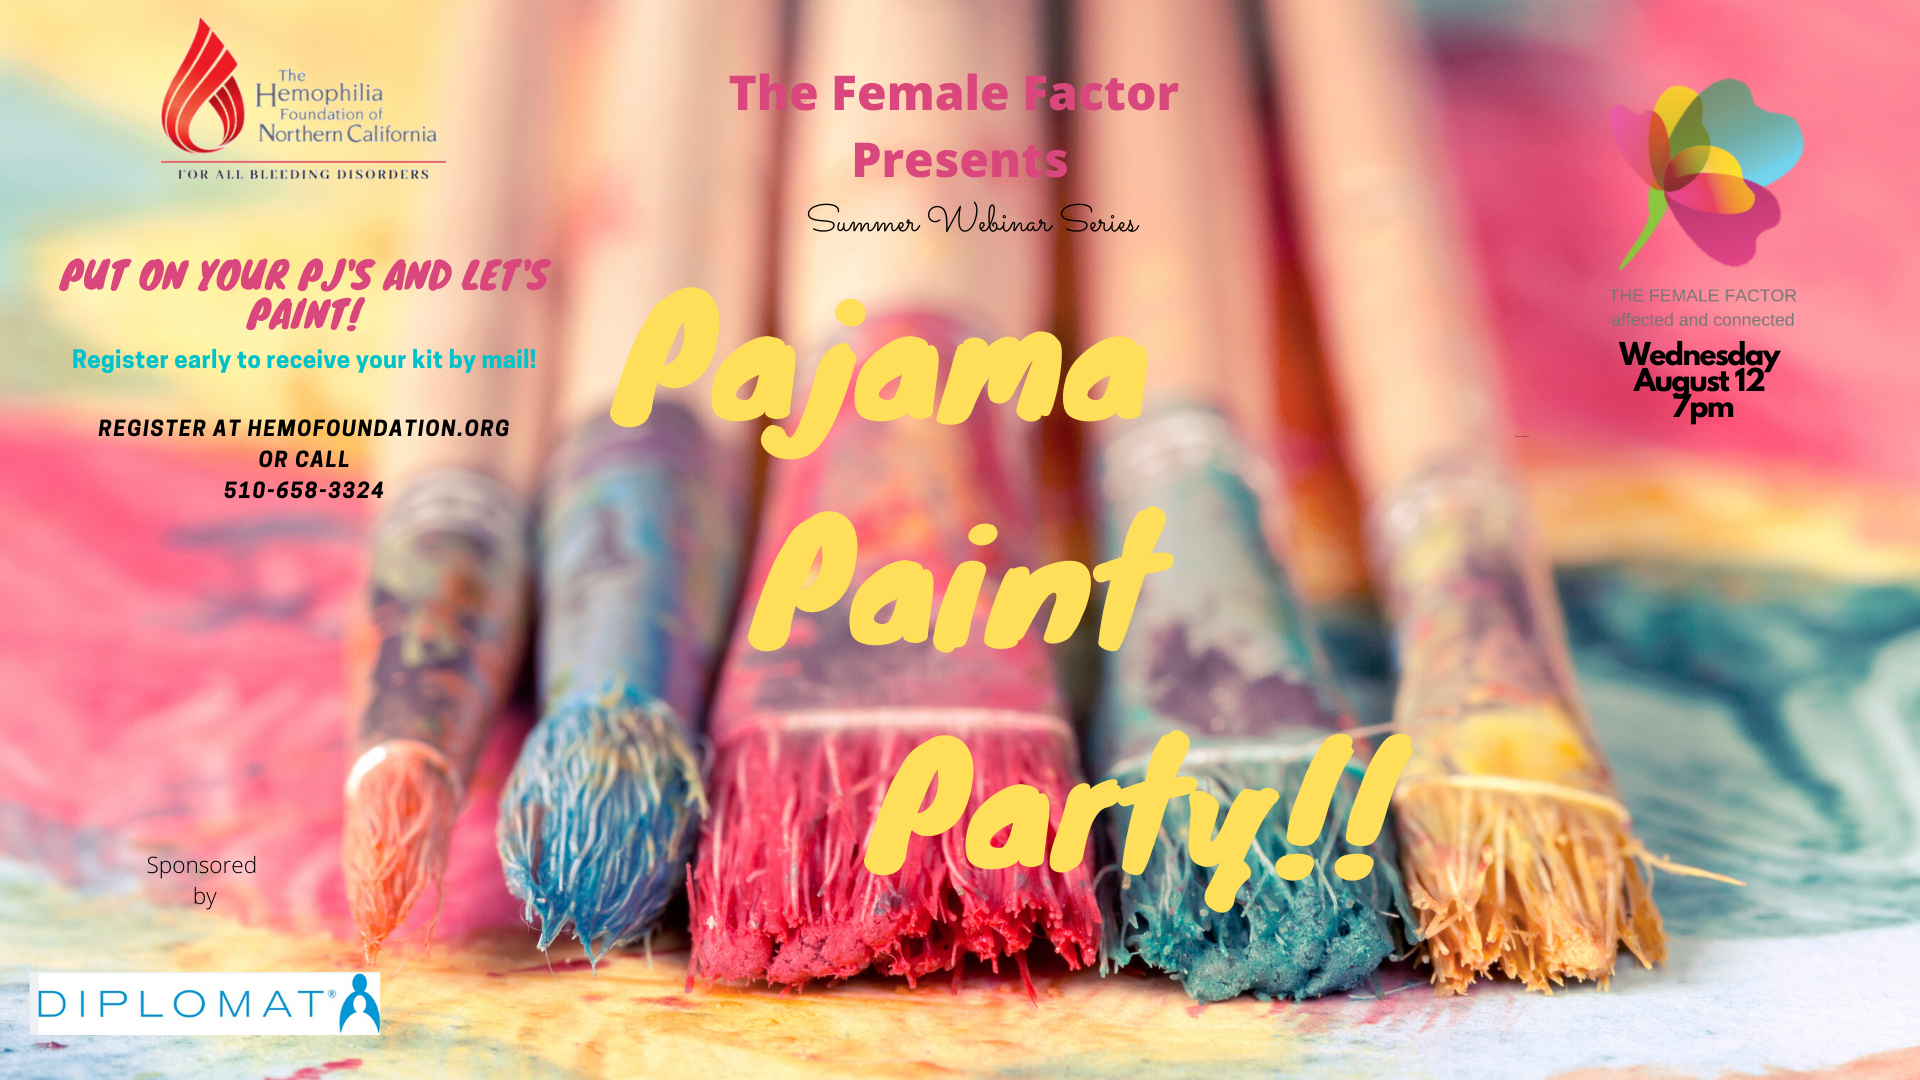 The Female Factor presents Pajama Paint Party!!!